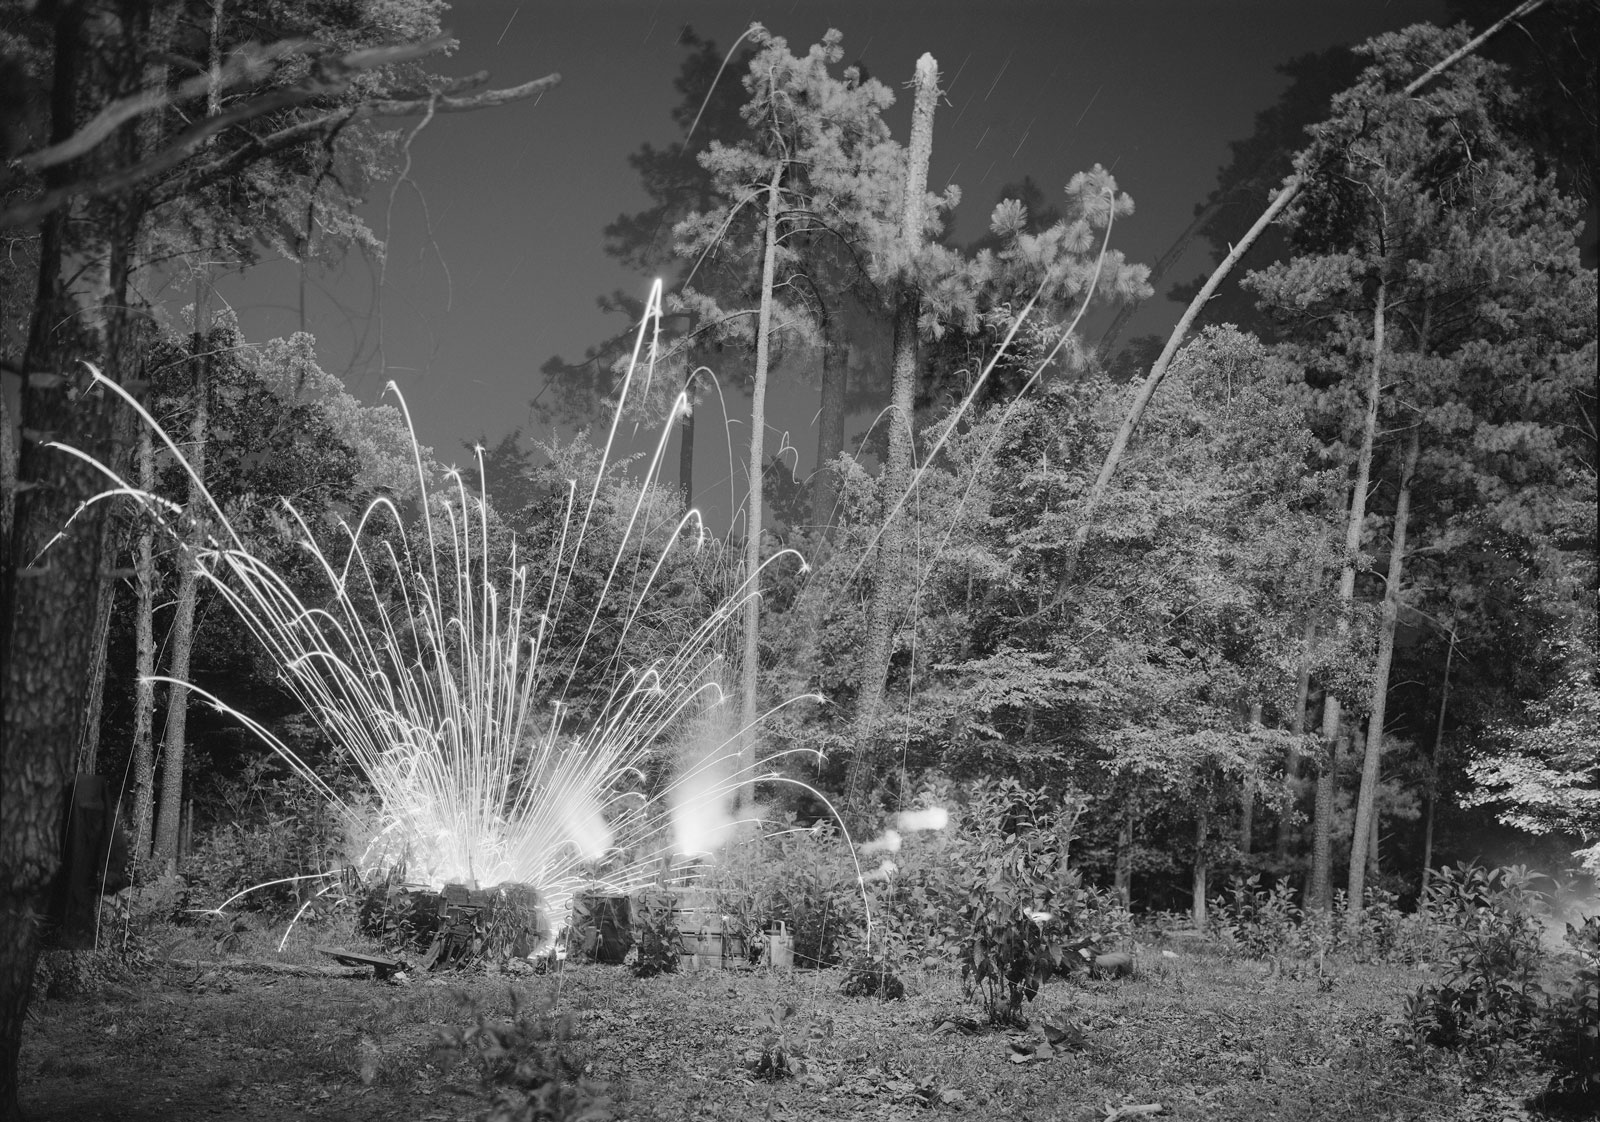 An explosion creates blasts of light in a wooded area in black and white